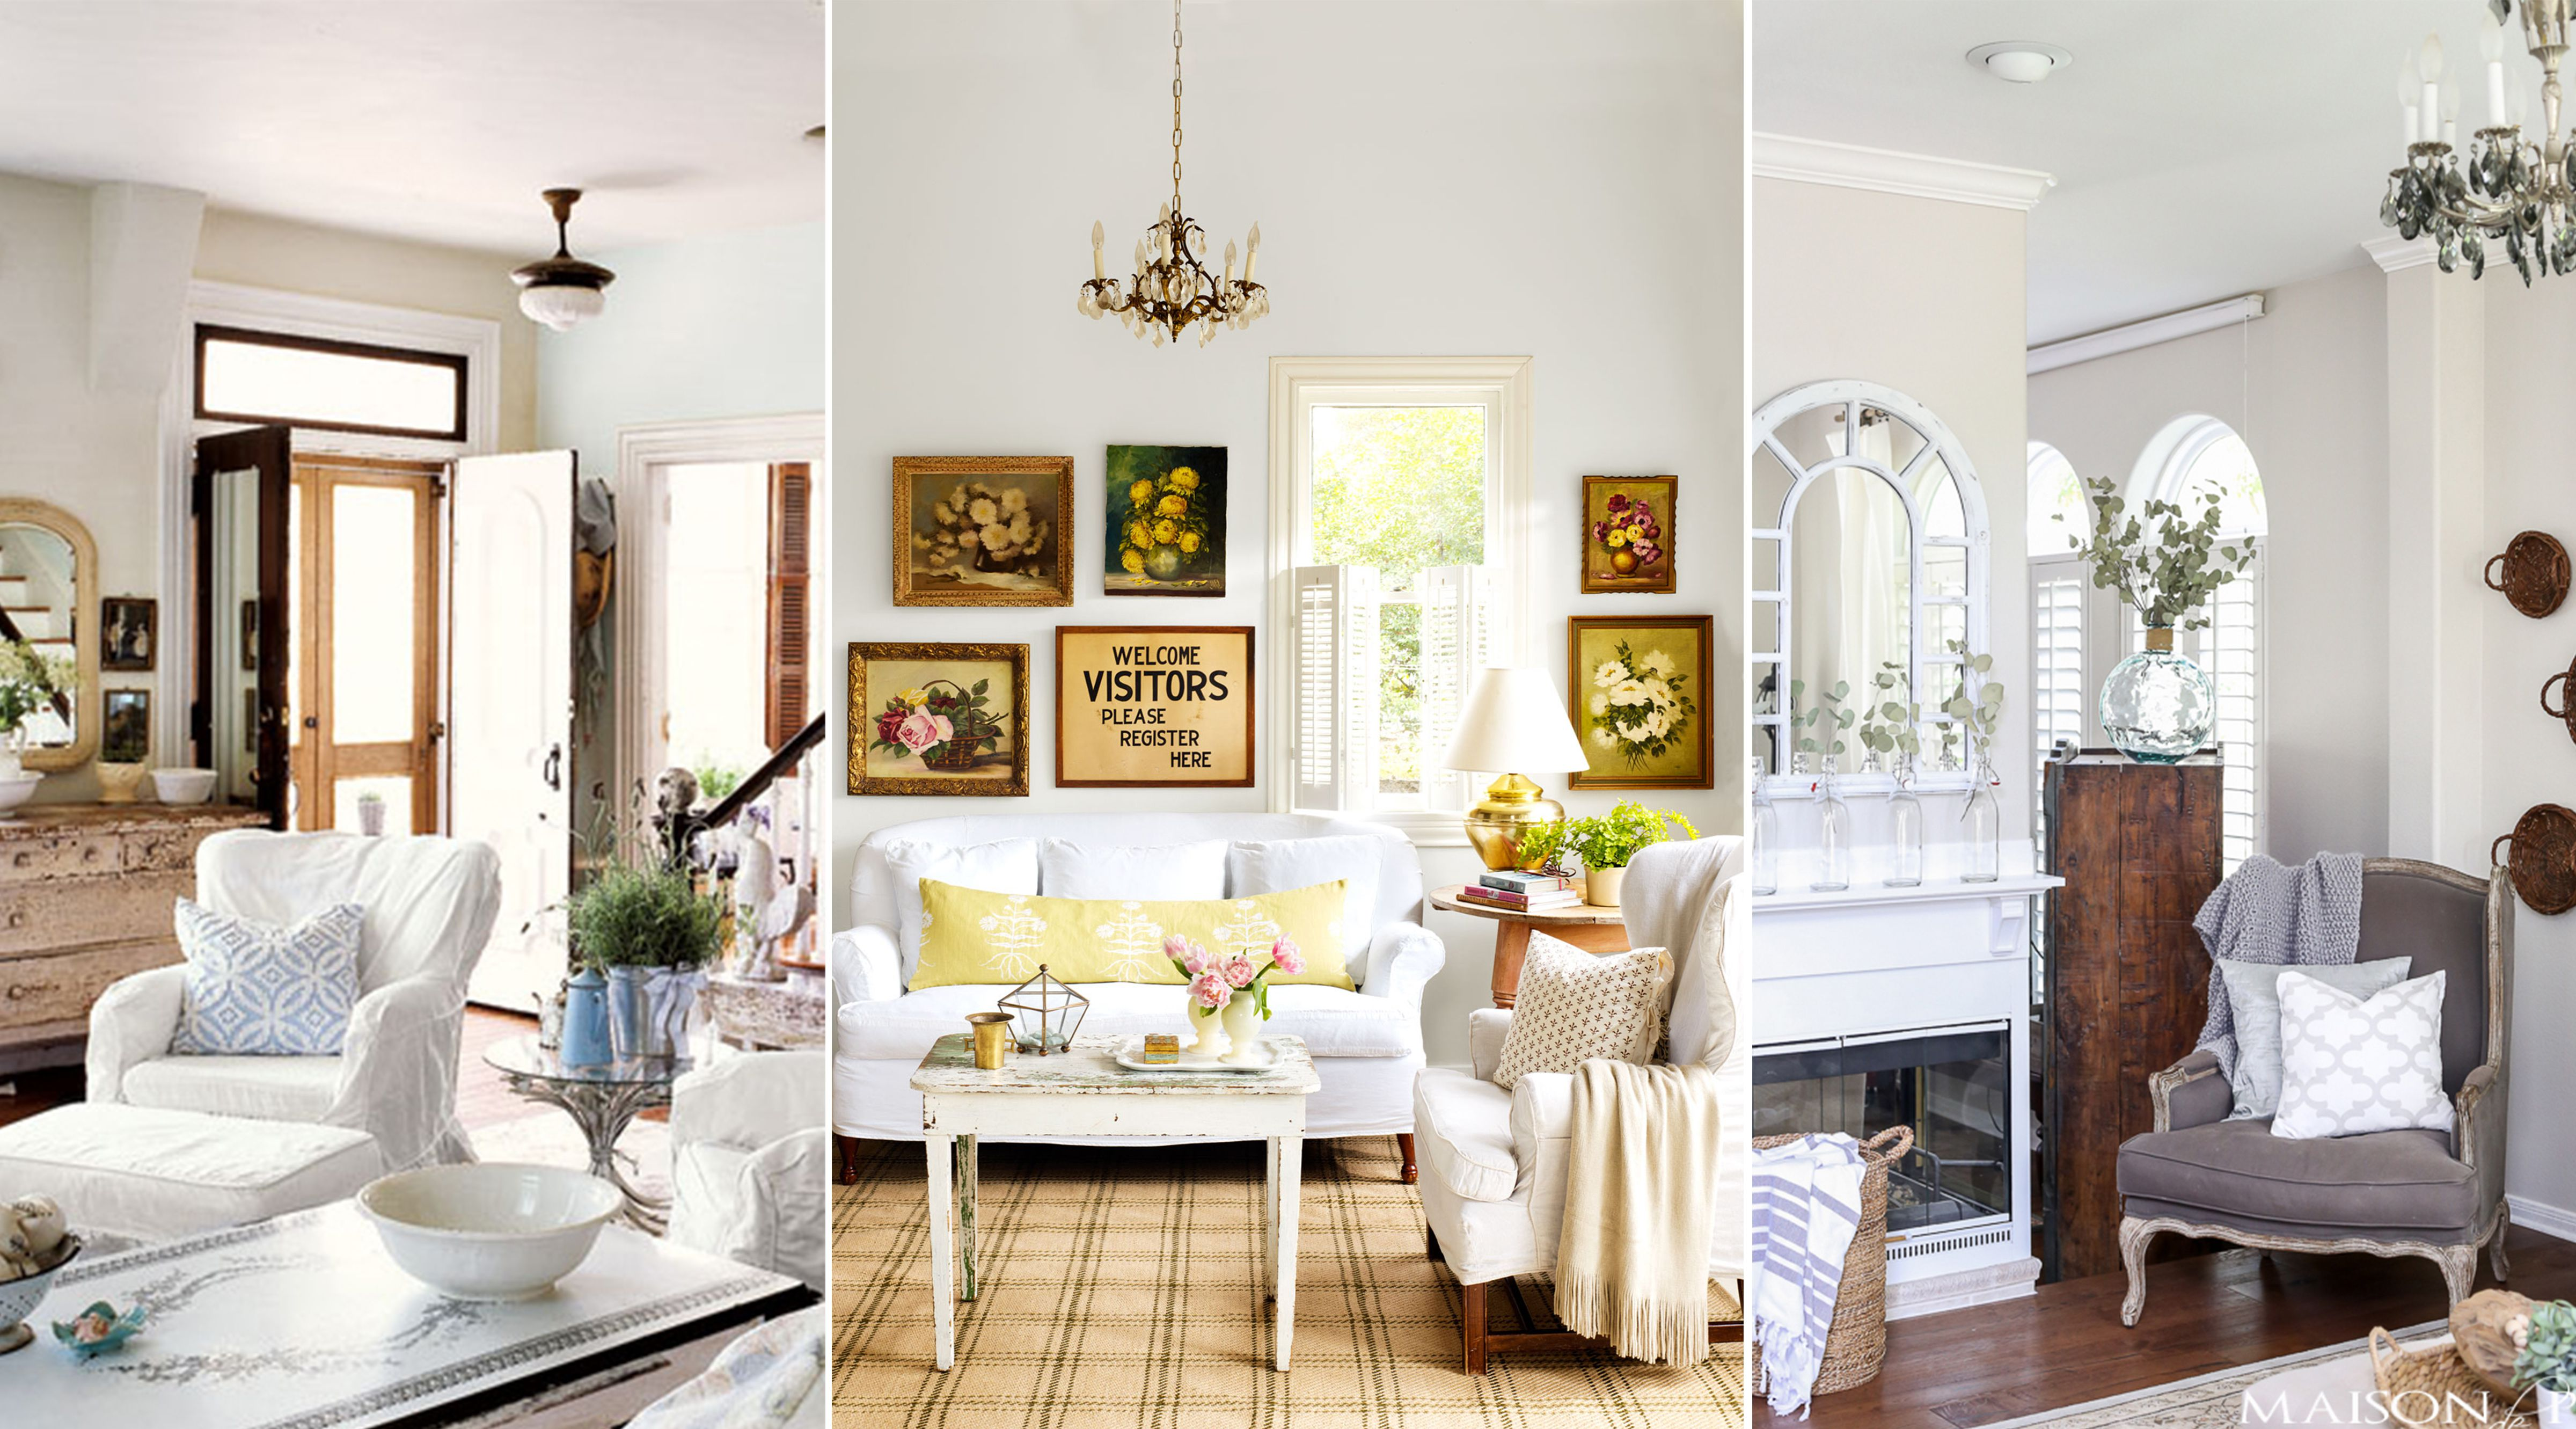 10 Shabby-Chic Living Room Ideas - Shabby Chic Decorating Inspiration for  Living Rooms